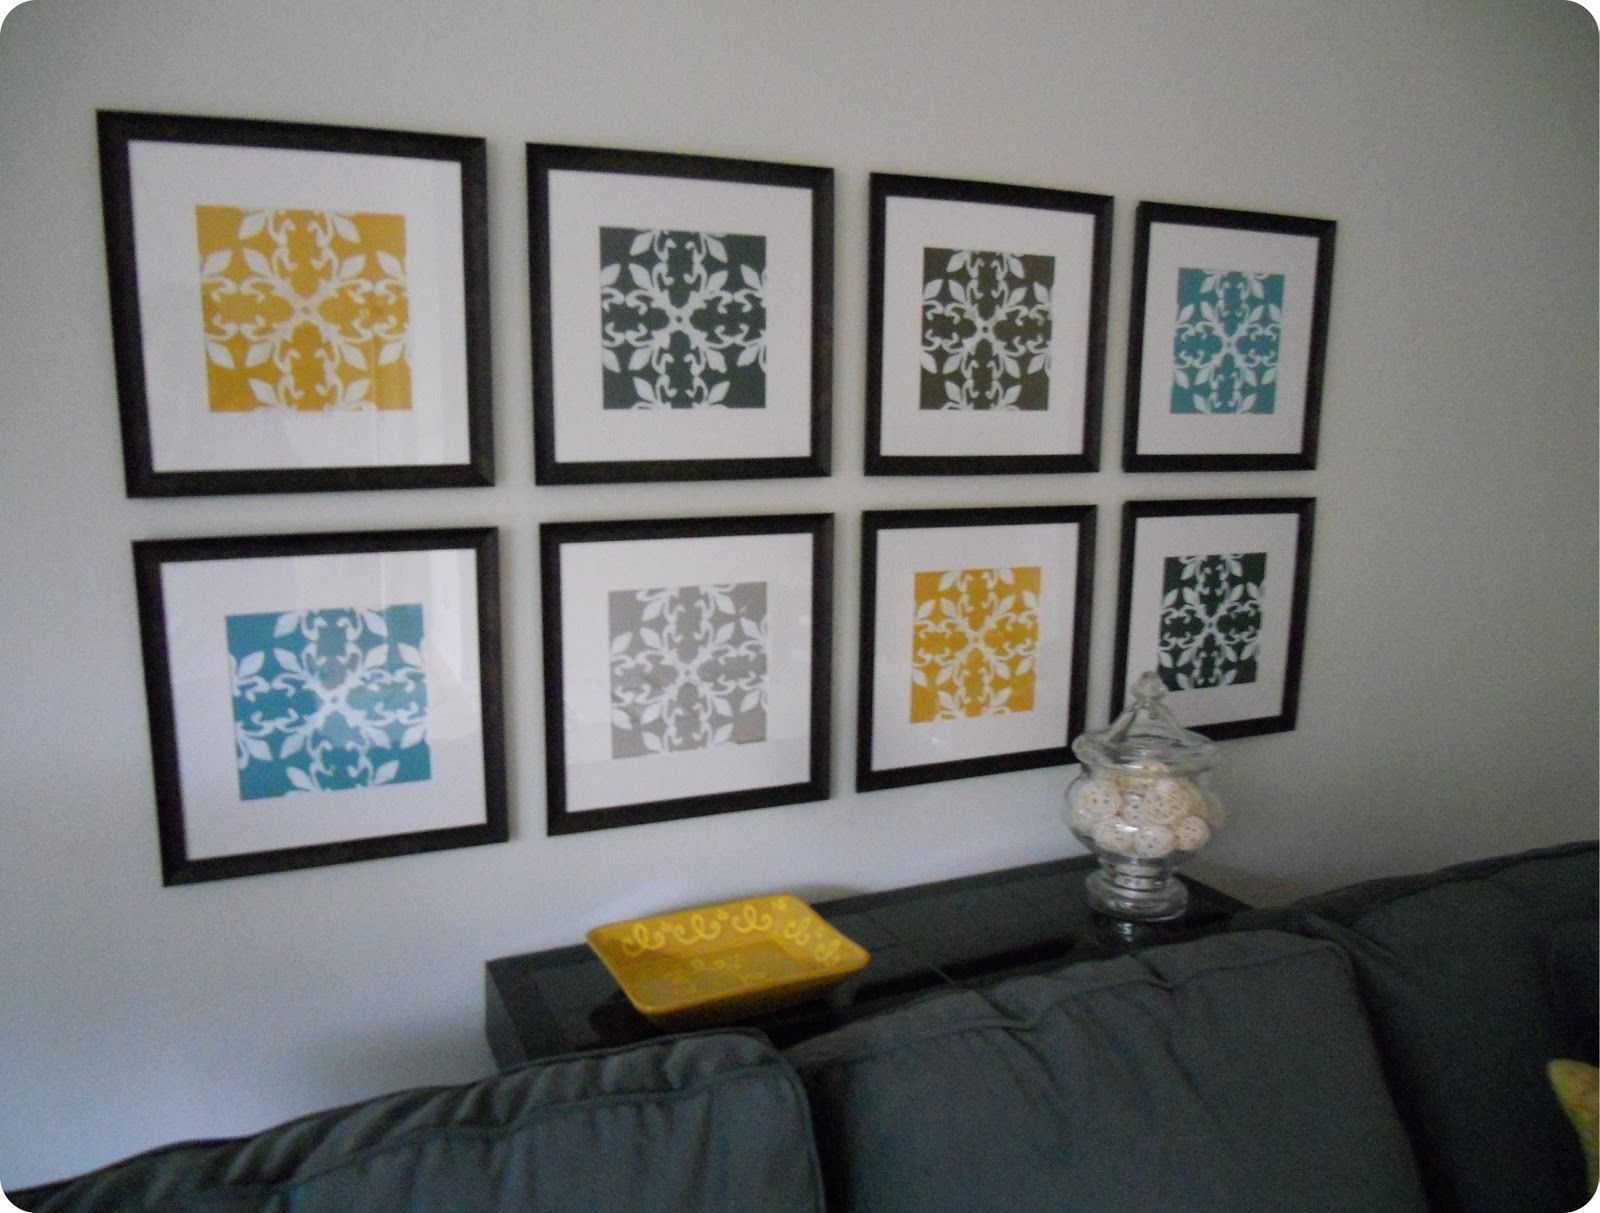 Scrapbook ideas cheap - Gallery Wall Made From Inexpensive Frames Scrapbook Paper Stencil And Acrylic Paint